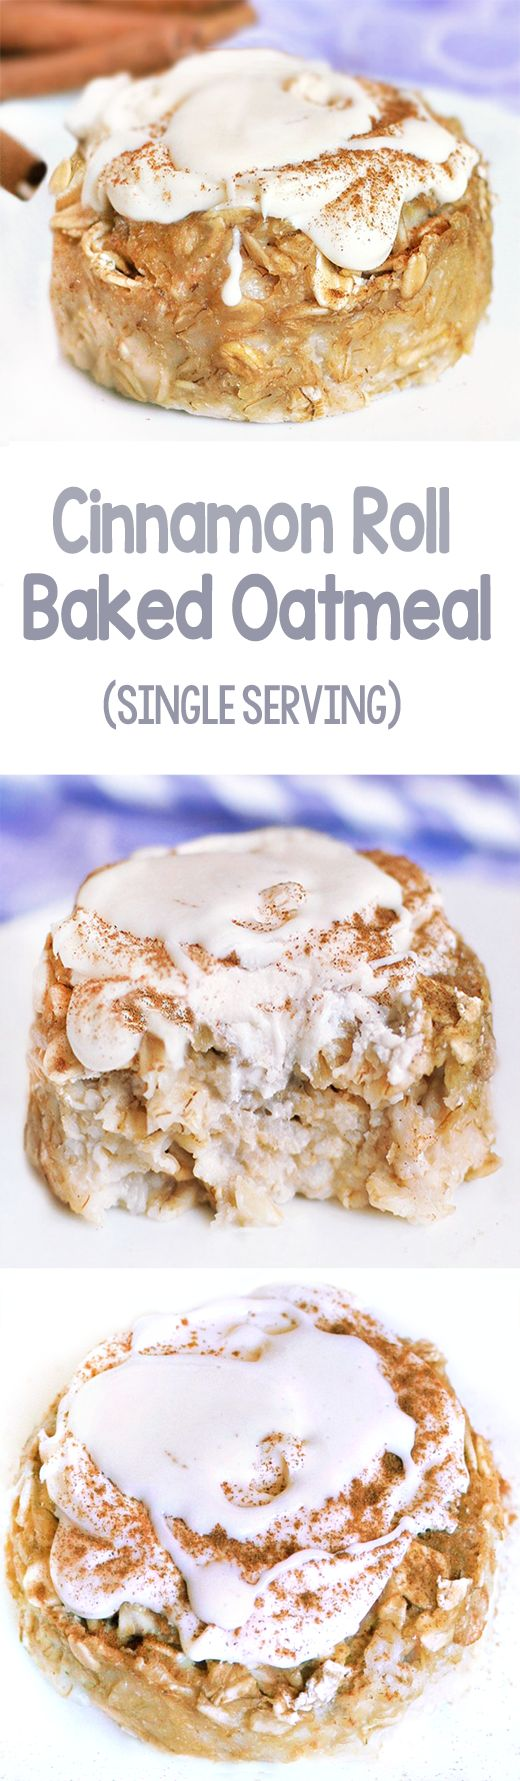 Satisfy your cravings for cinnamon rolls in a healthy way with this delicious and filling cinnamon roll baked oatmeal!